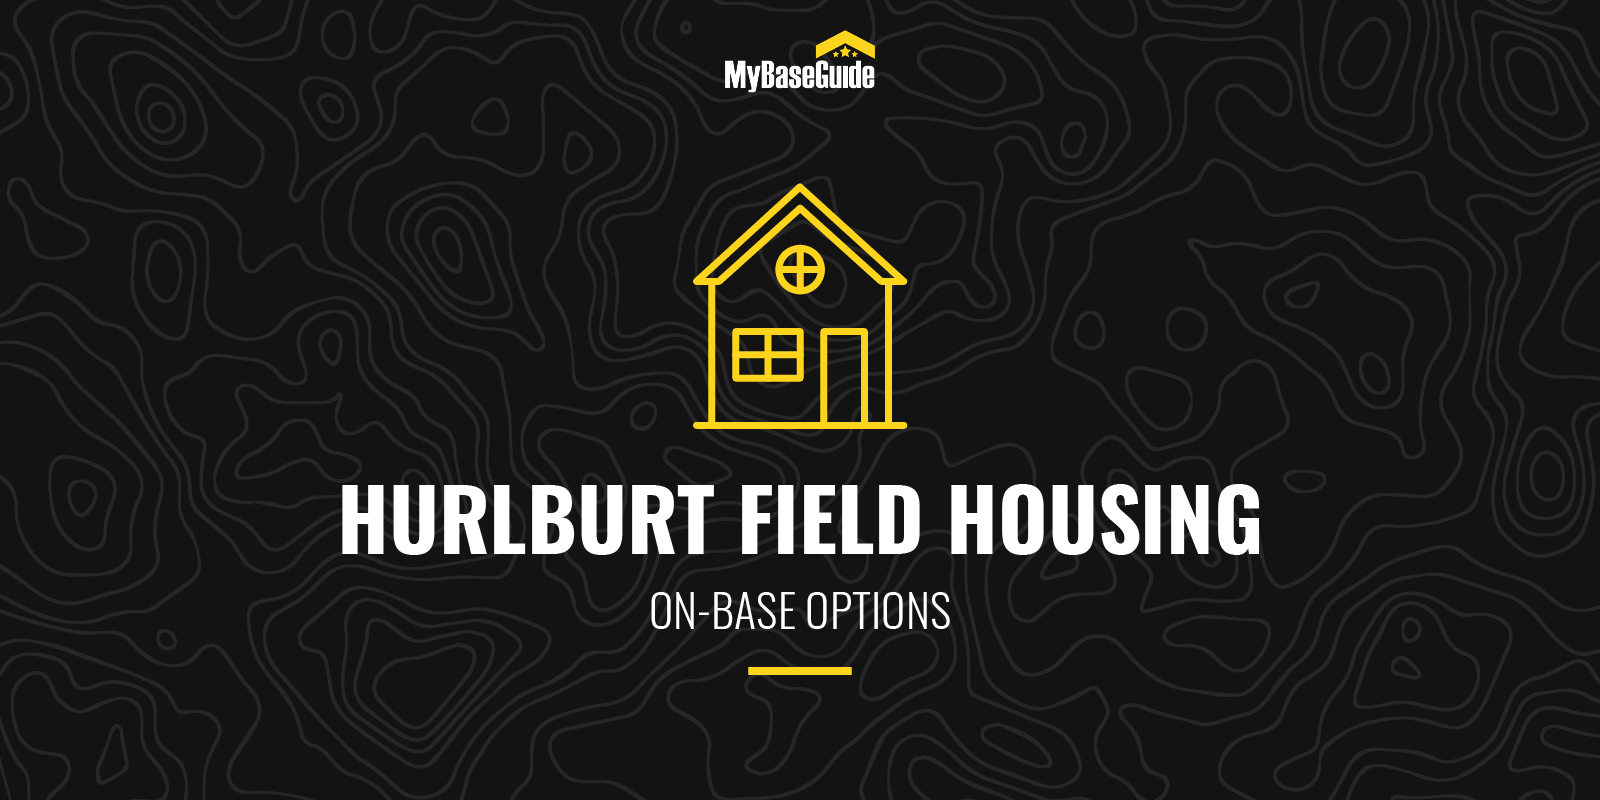 Hurlburt Field Housing: On-Base Options